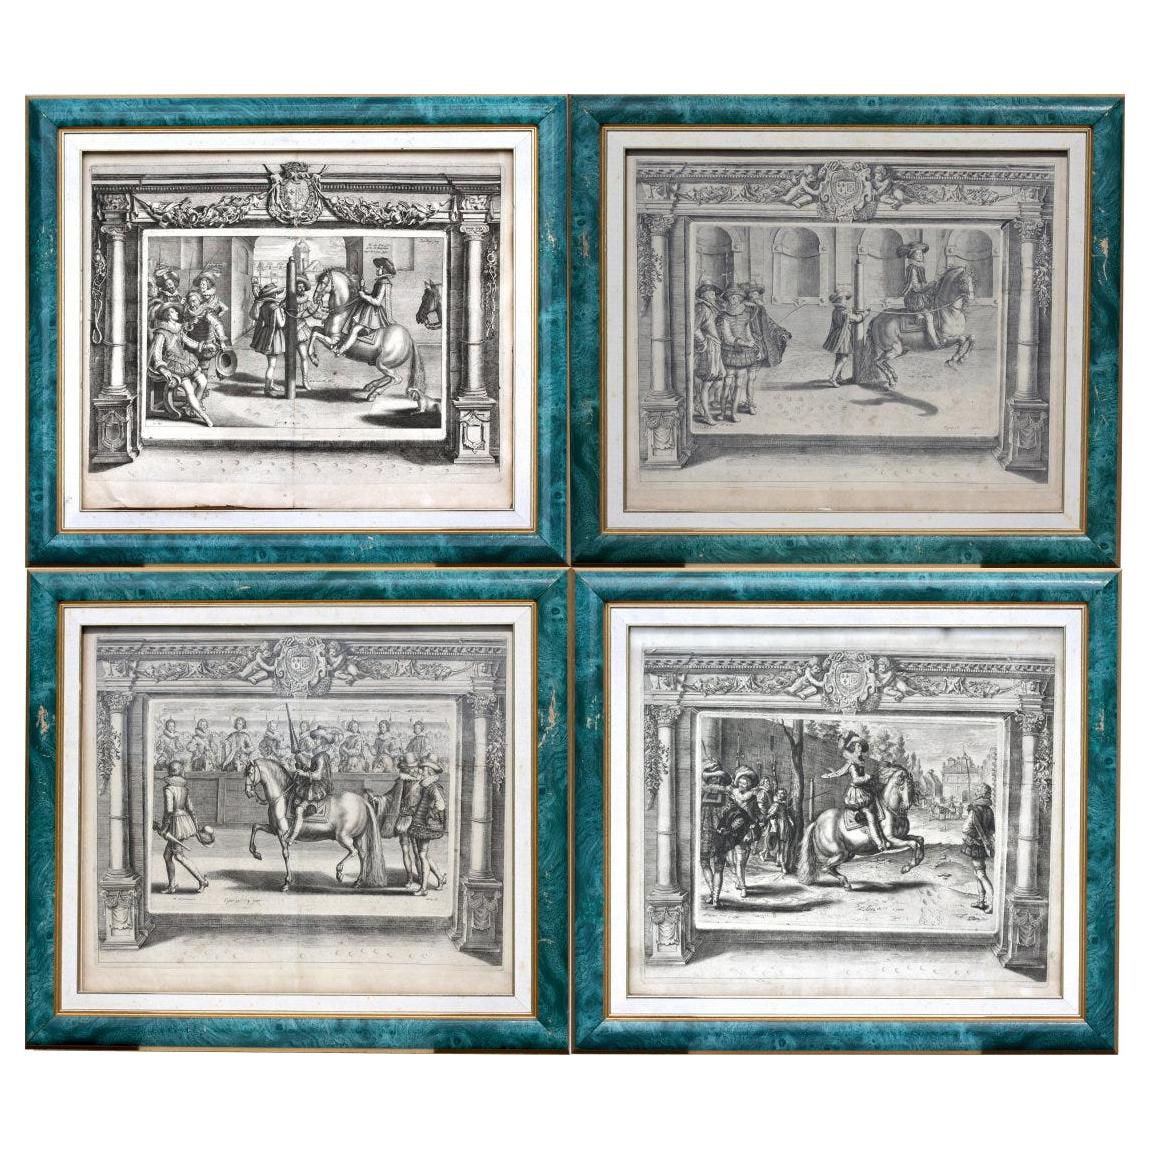 Set of Four French Equestrian Engravings, 18th-19th Century